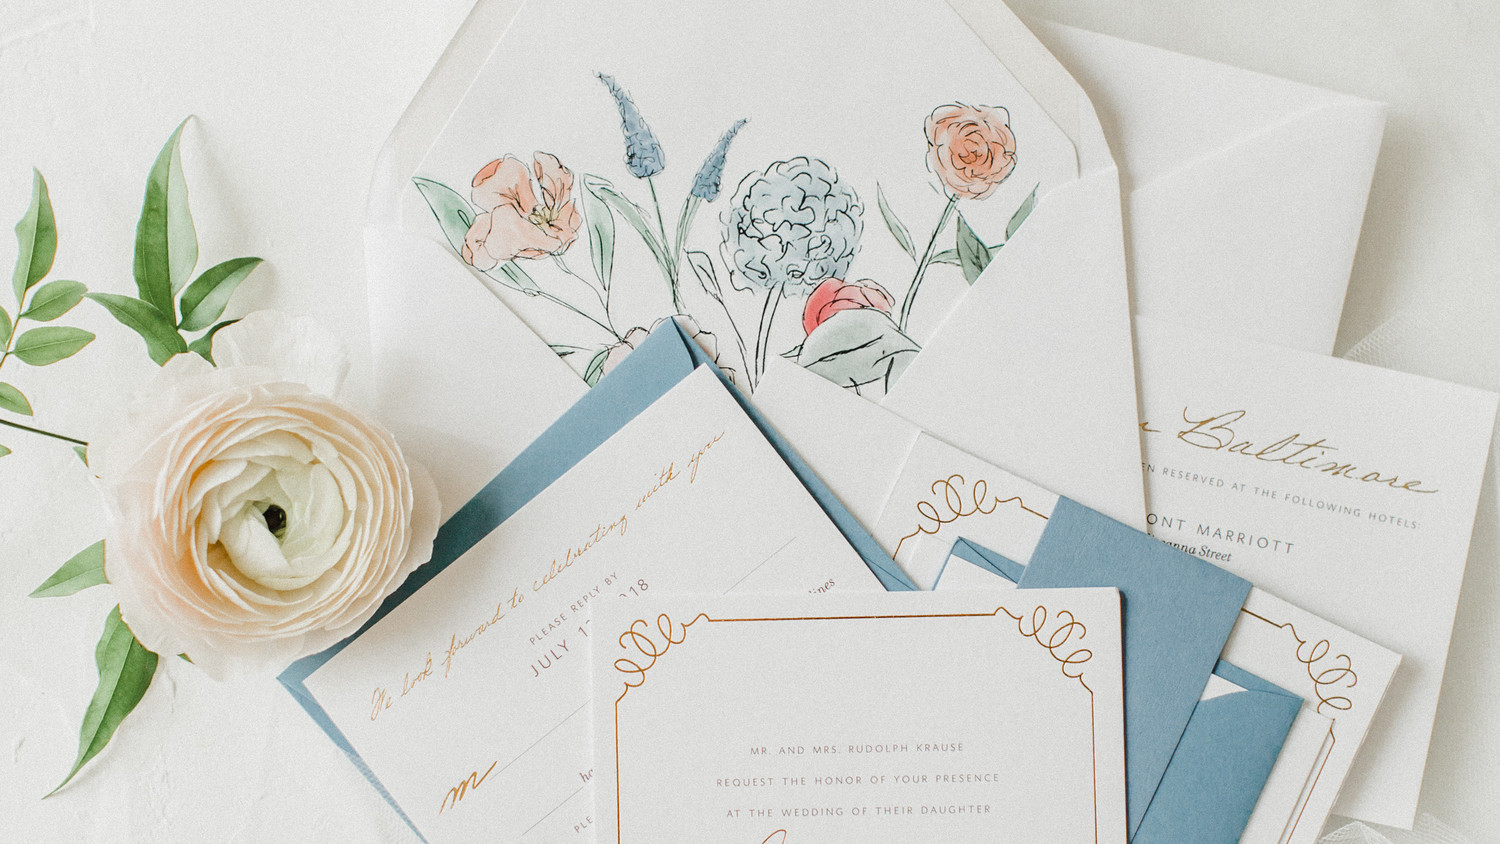 Martha Stewart Wedding Invitation: How Much Time Should You Really Allot For Stuffing Your Own Wedding Invitations?